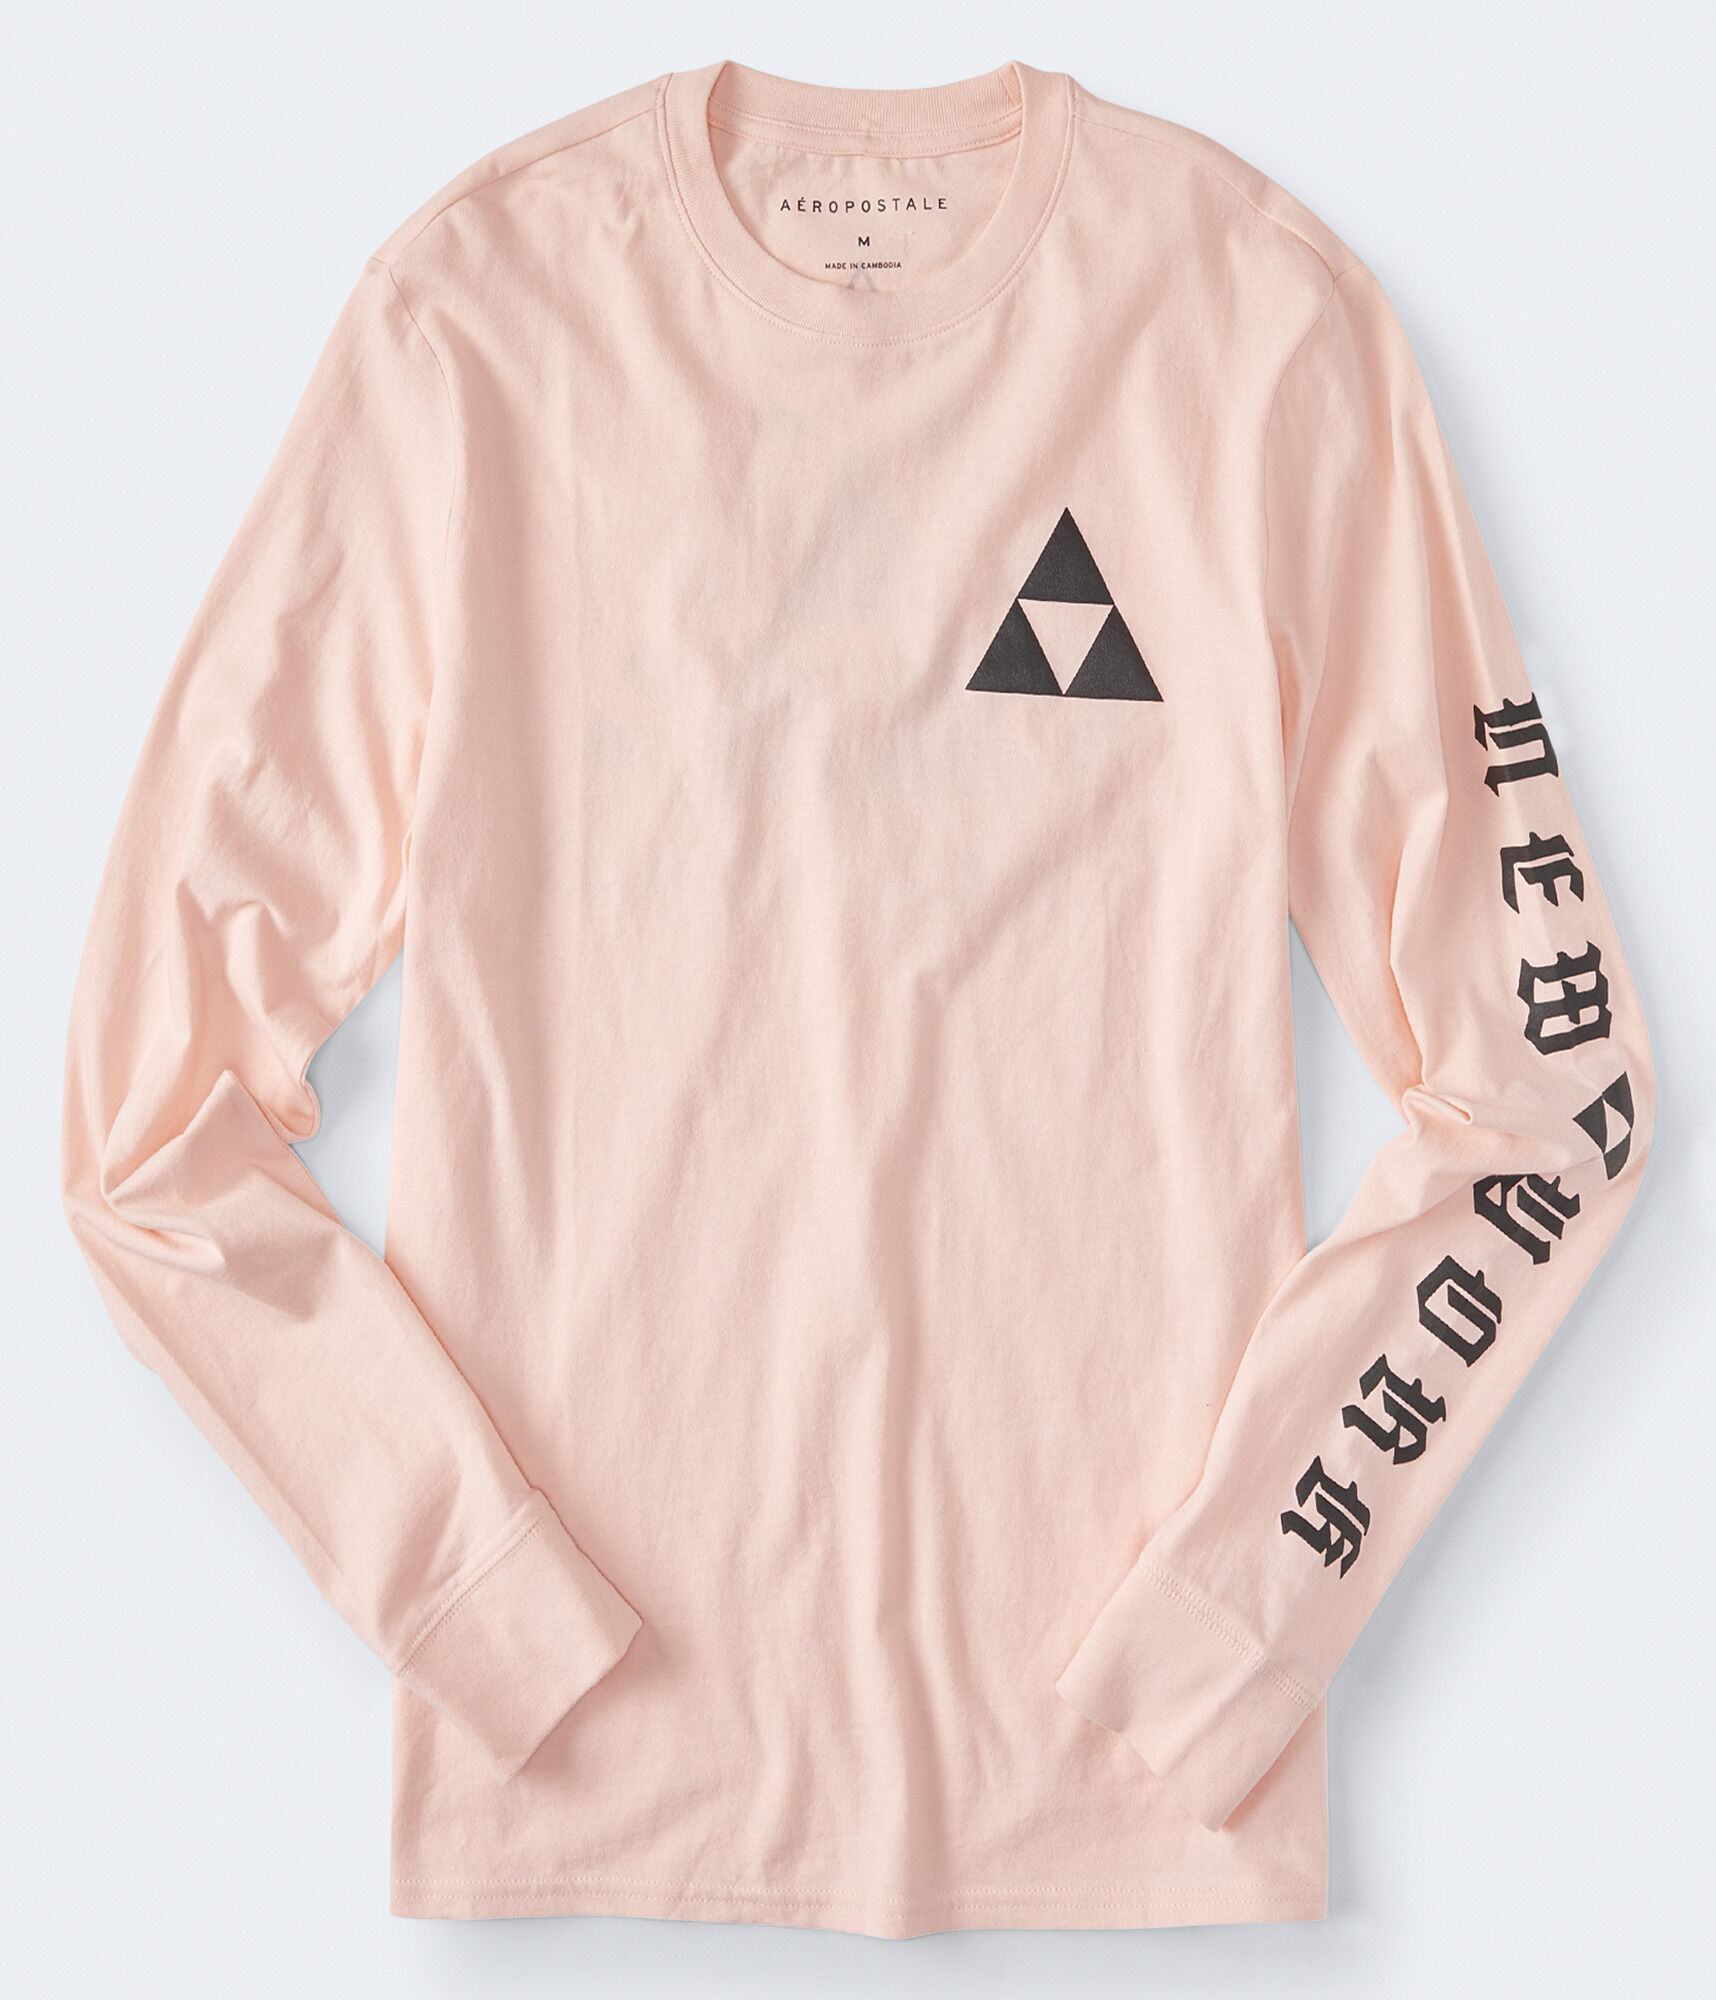 July A Women's Letter Print Crop Top Summer Casual Long Sleeve Graphic T-Shirts. by July A. $ - $ $ 9 $ 11 89 Prime. FREE Shipping on eligible orders. Some sizes/colors are Prime eligible.